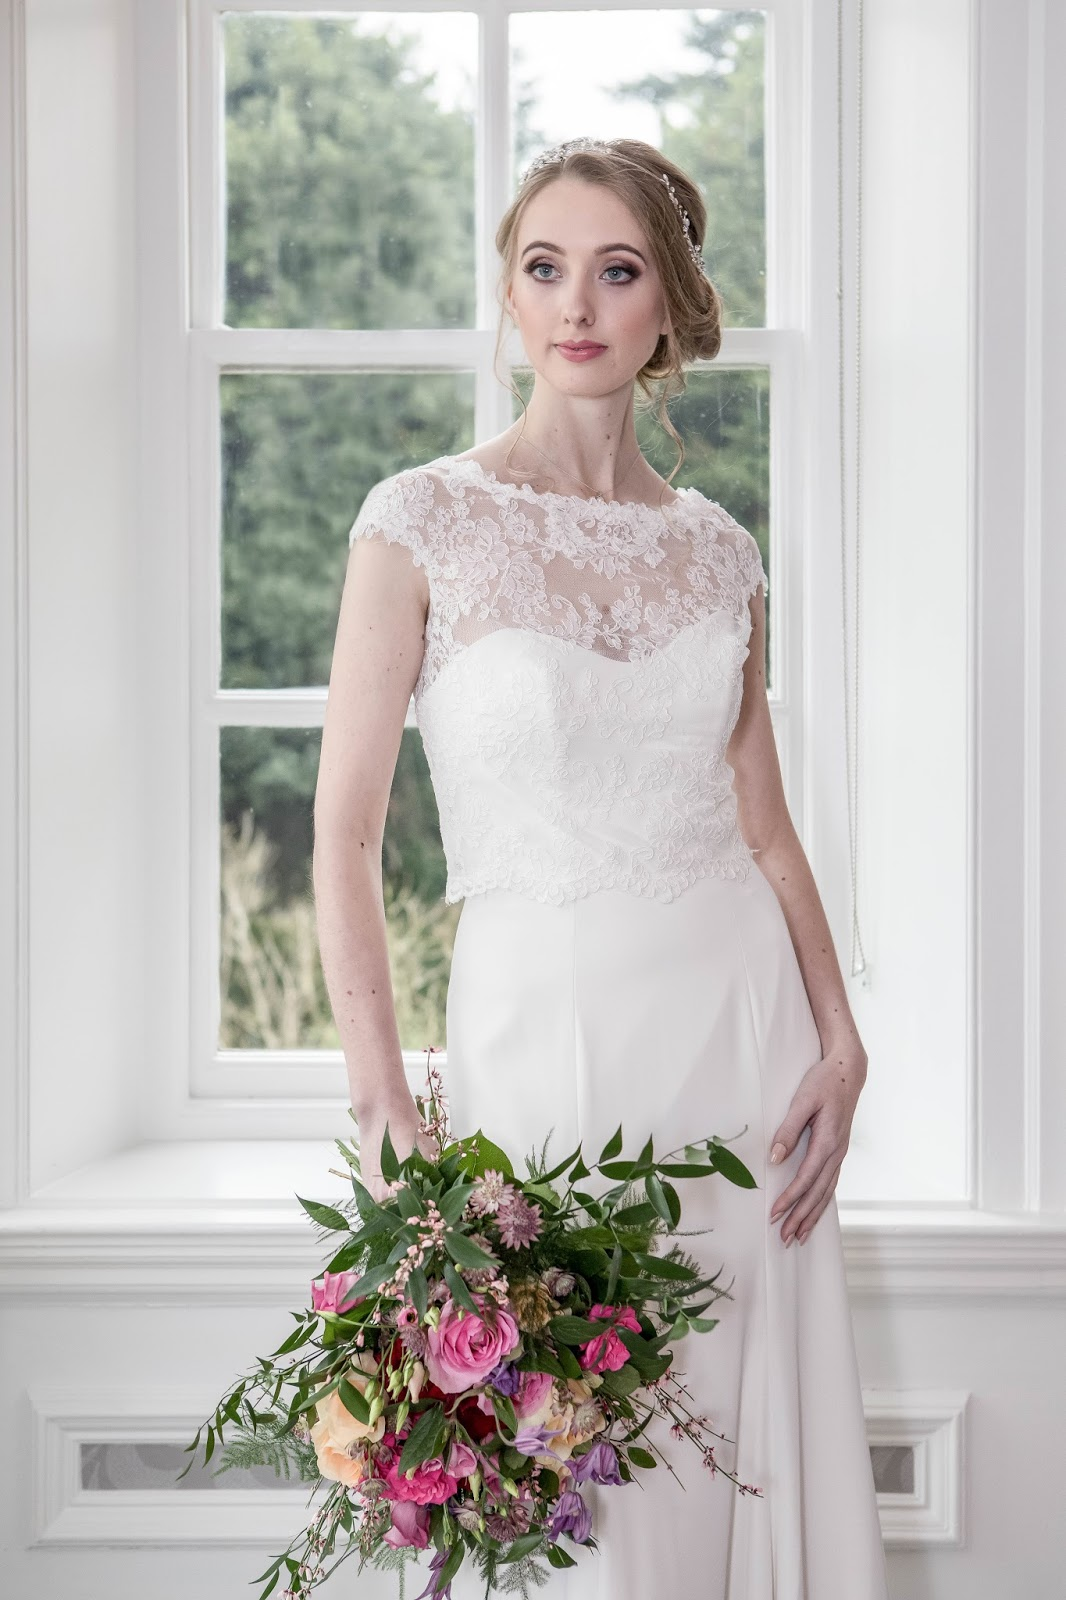 How to Style Bridal Lace Bolero at Wedding